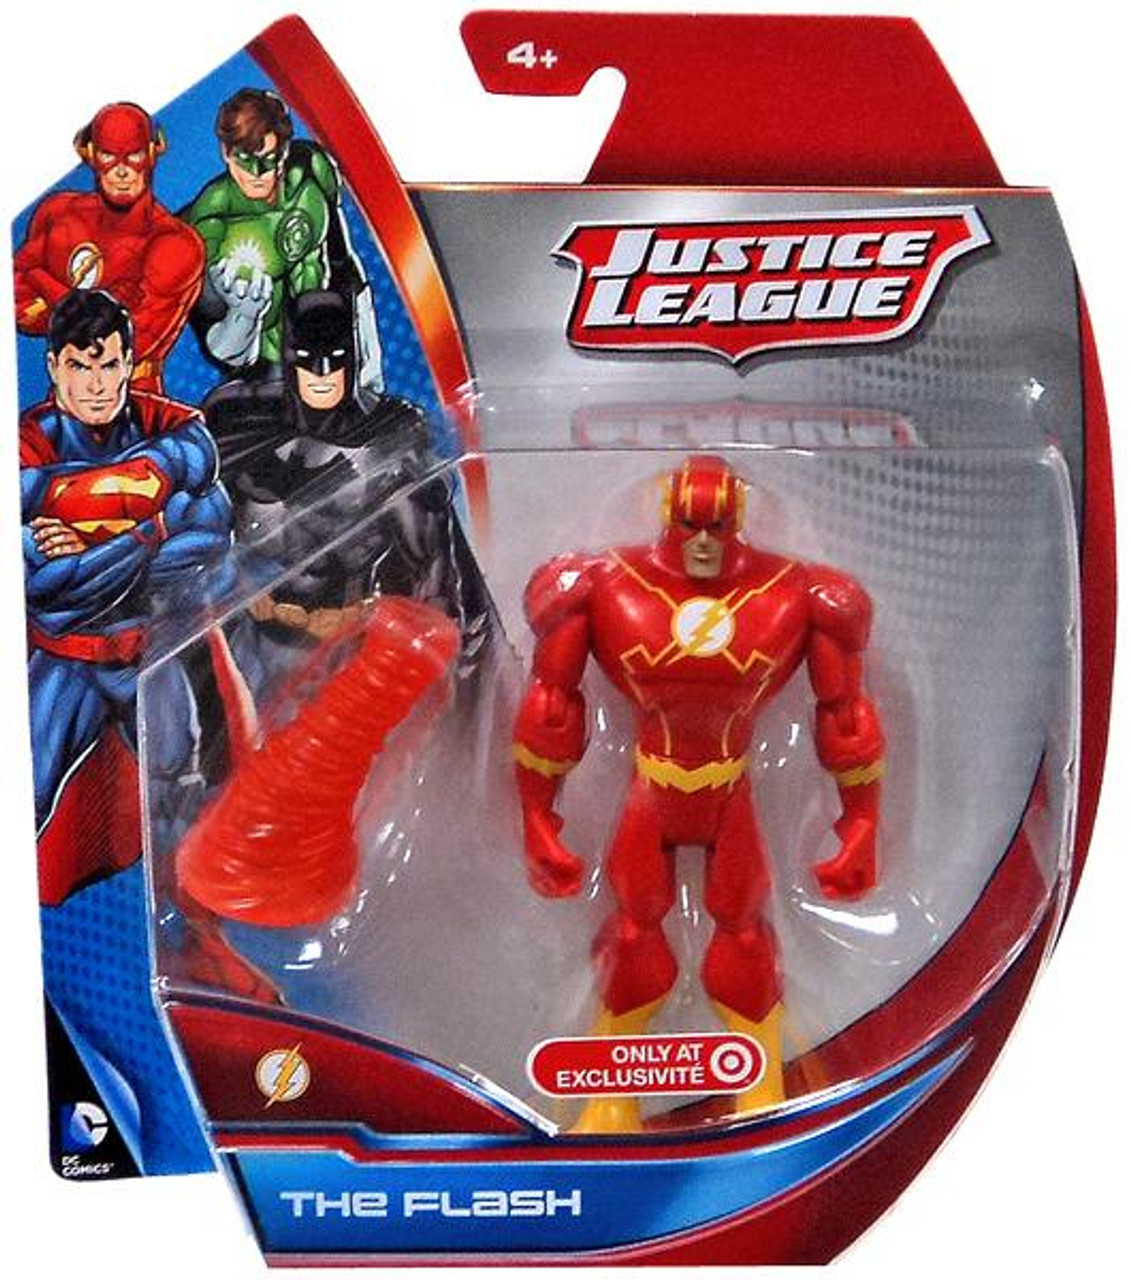 Justice League The Flash Exclusive Action Figure